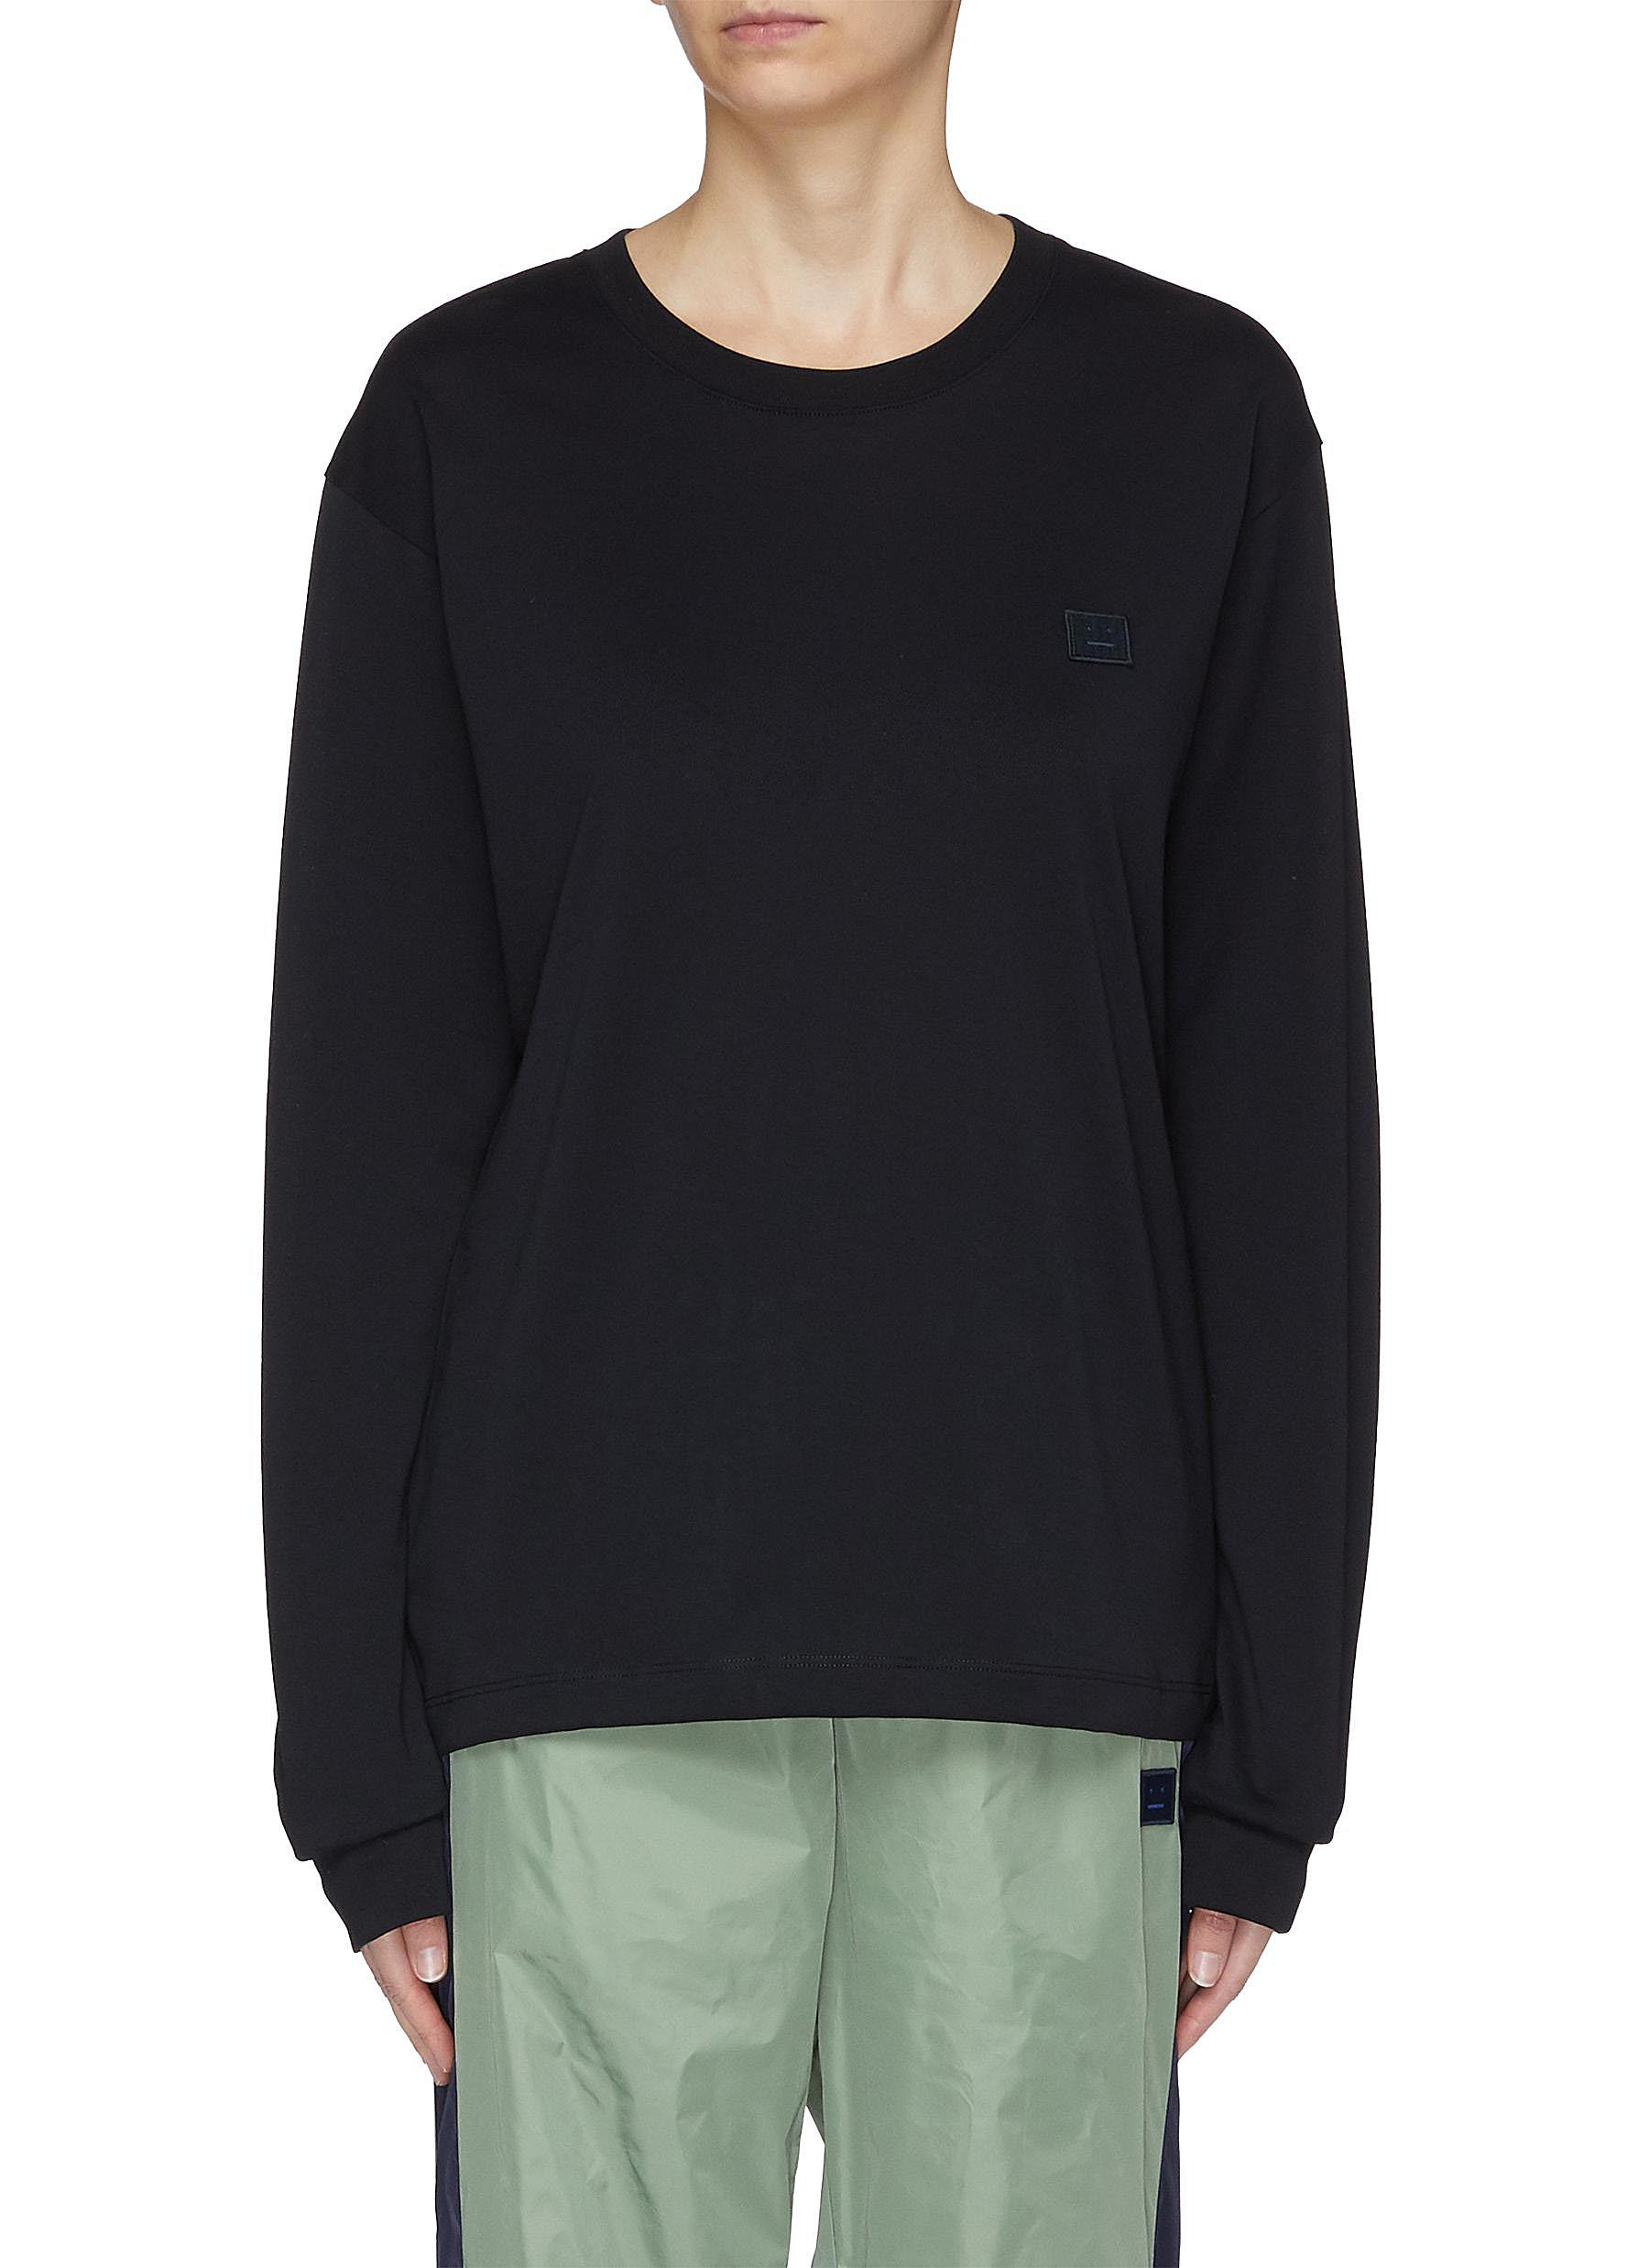 Patch long sleeve T-shirt by Acne Studios